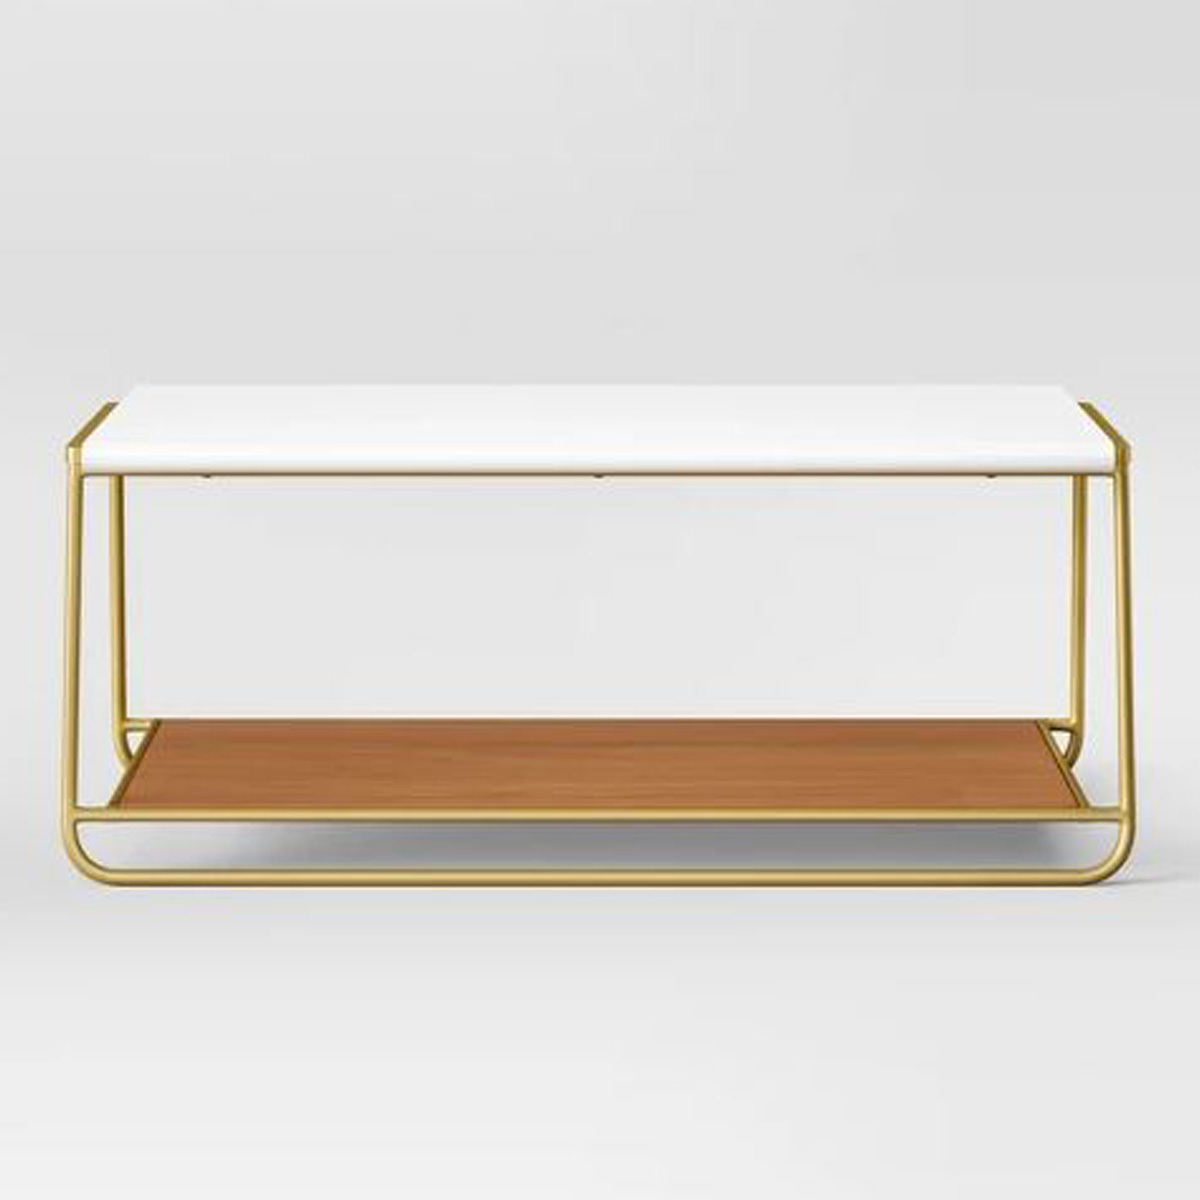 gold metal coffee table with white top and wood bottom shelf photo